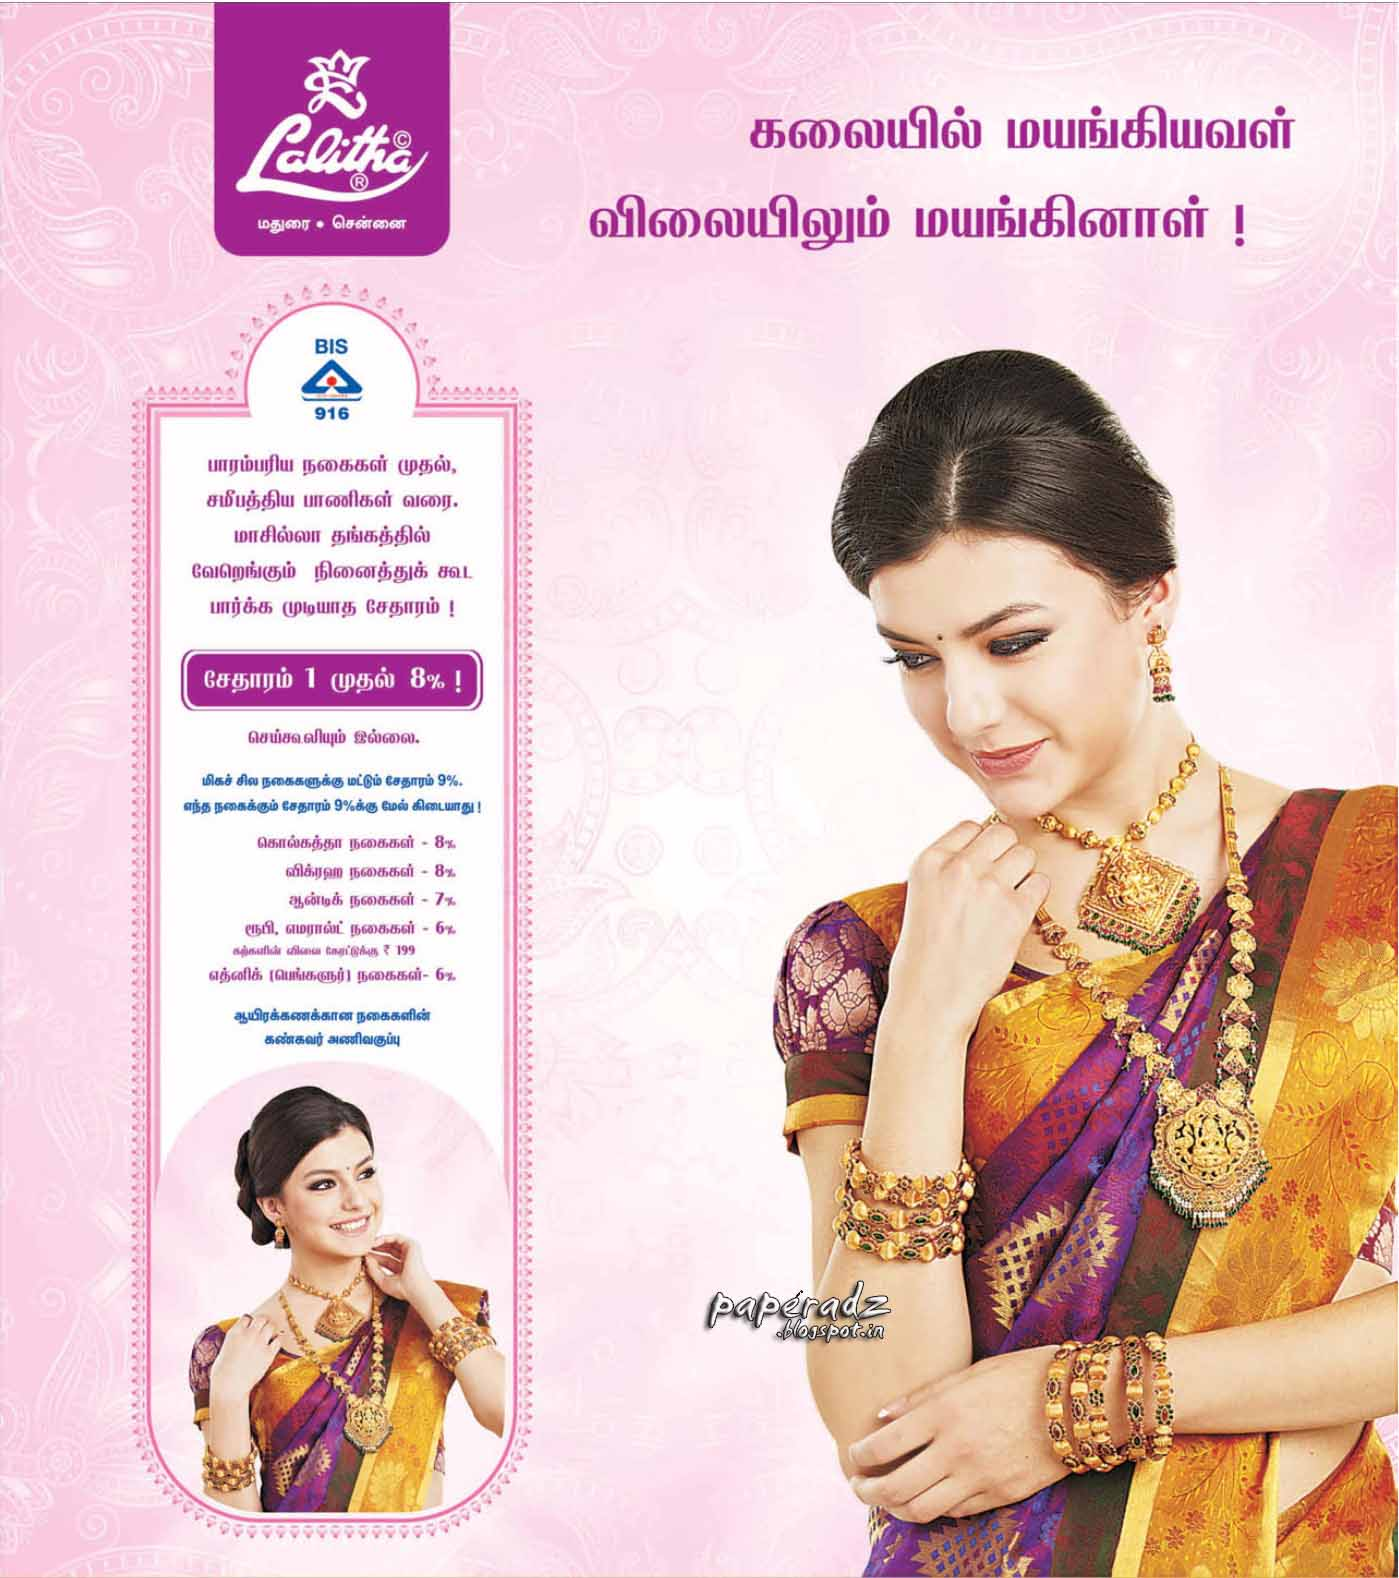 Lalitha jewellery latest ads news paper advertisements for Hm diwan jewellers